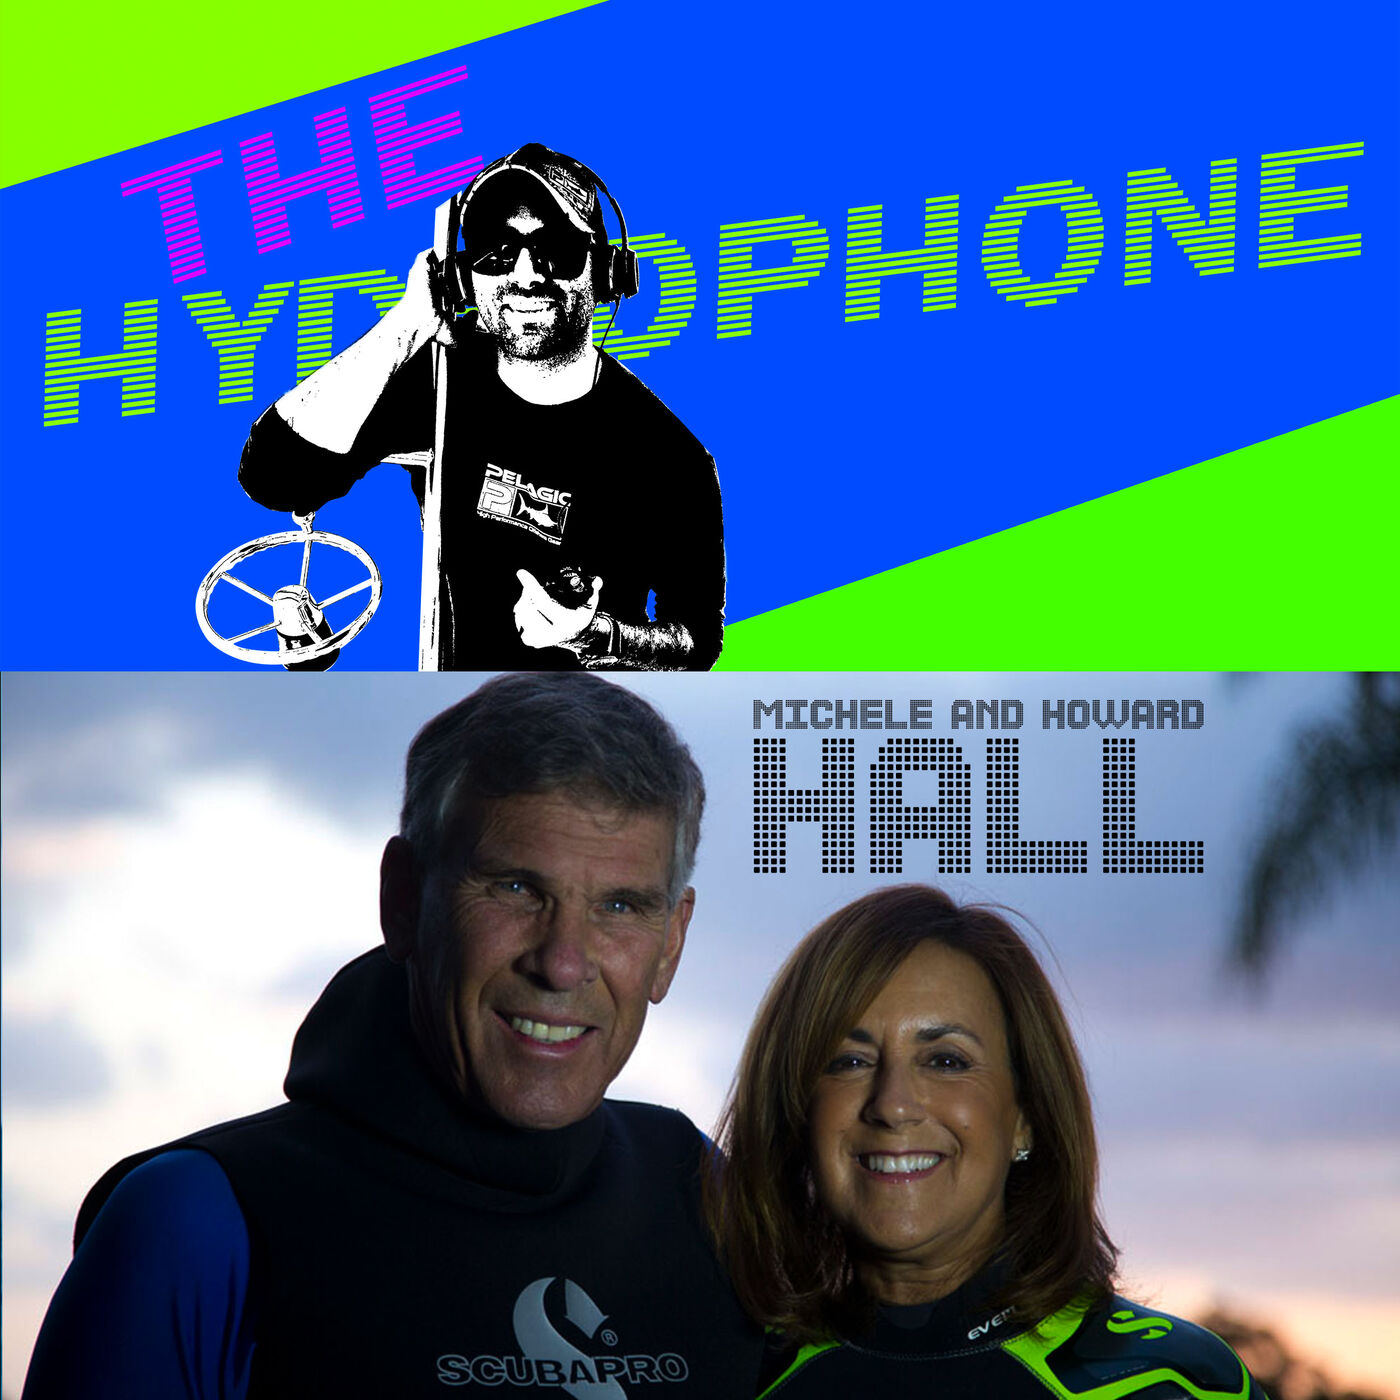 Michele & Howard Hall